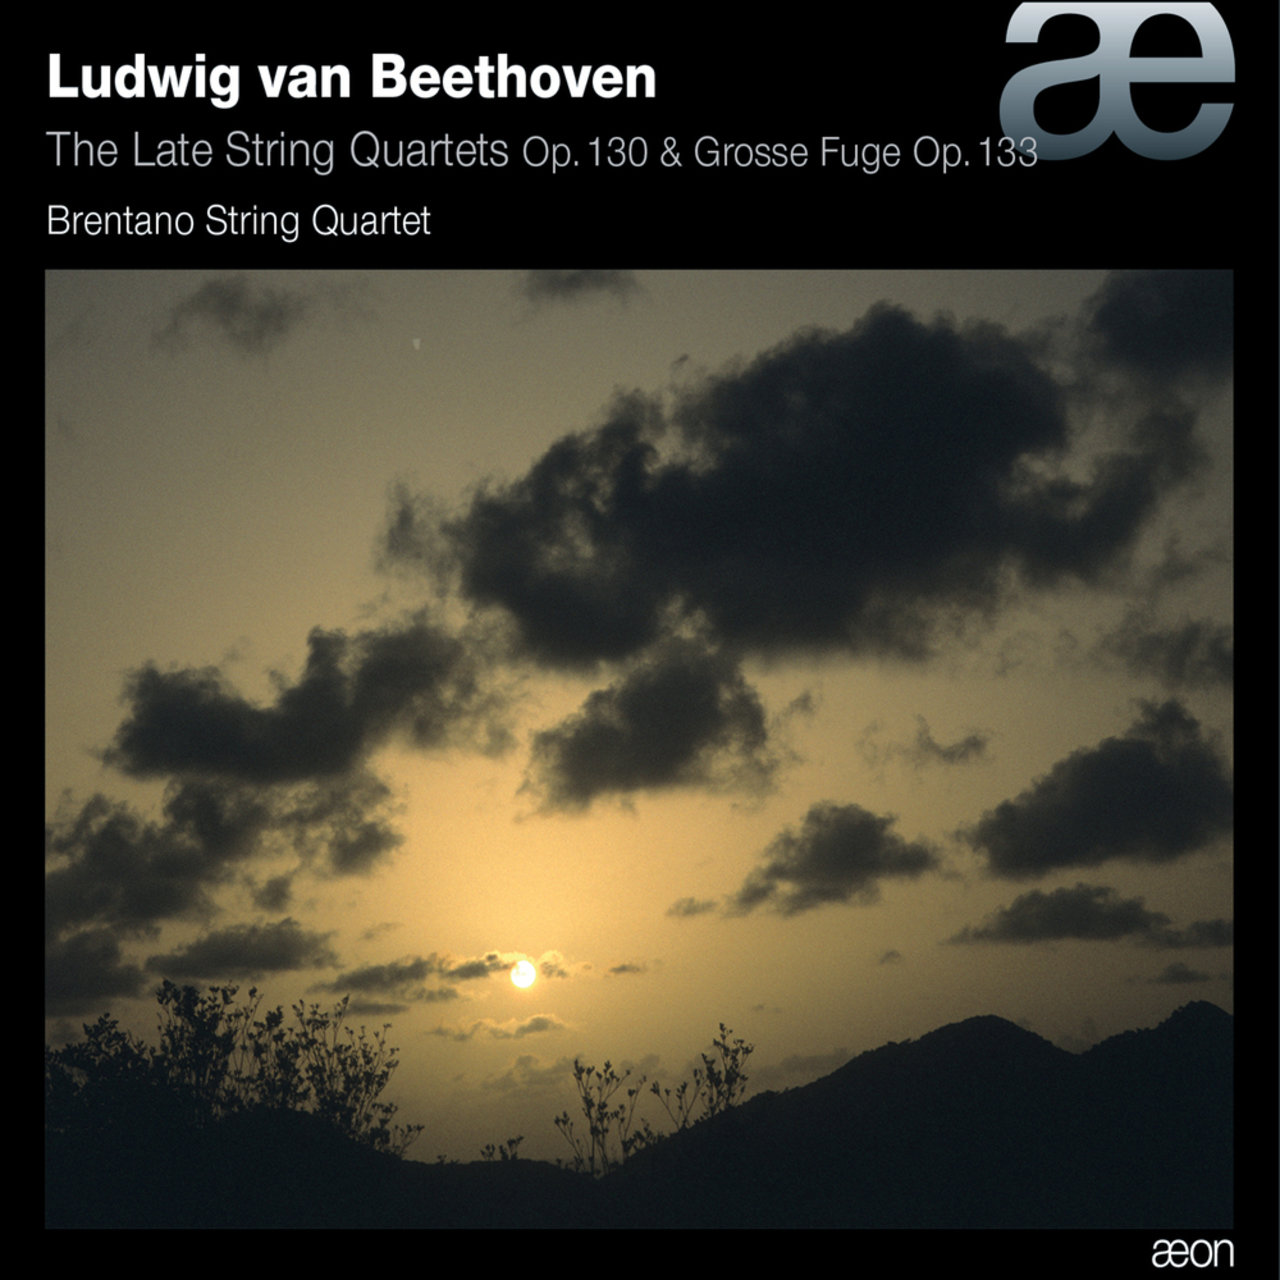 Beethoven: Late String Quartets, Op. 130 & Grosse Fuge, Op. 133